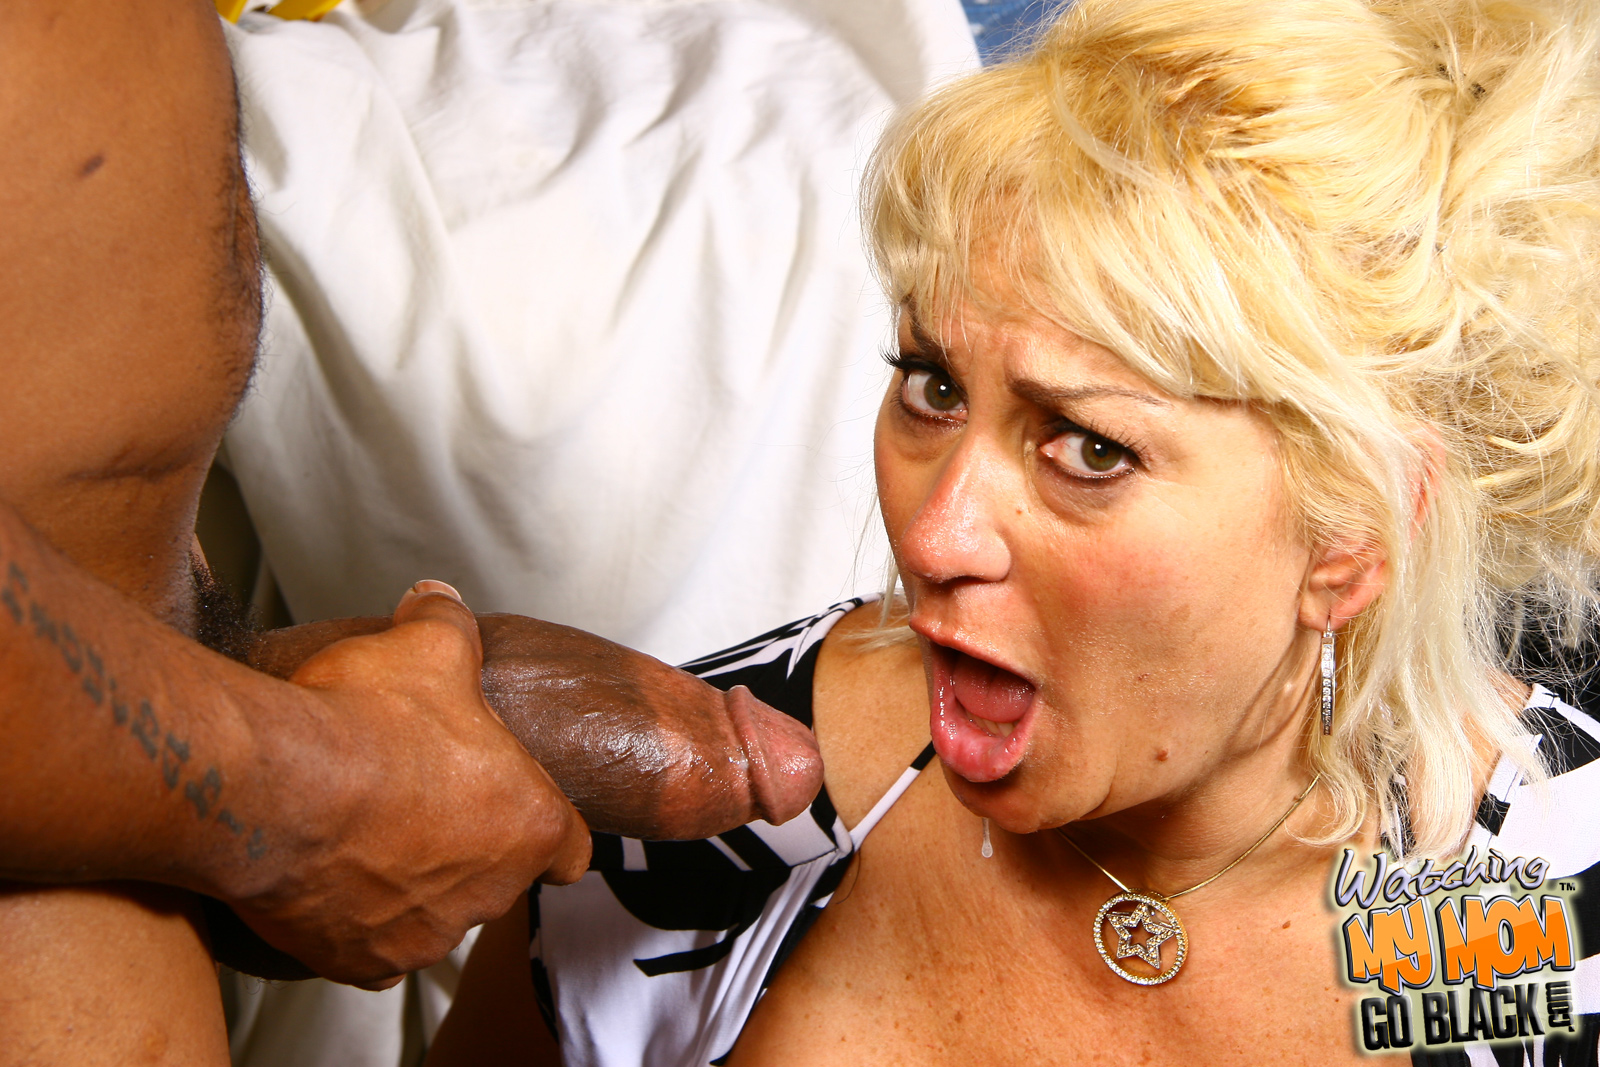 Can u handle watching ur wife being fucked - 1 part 2